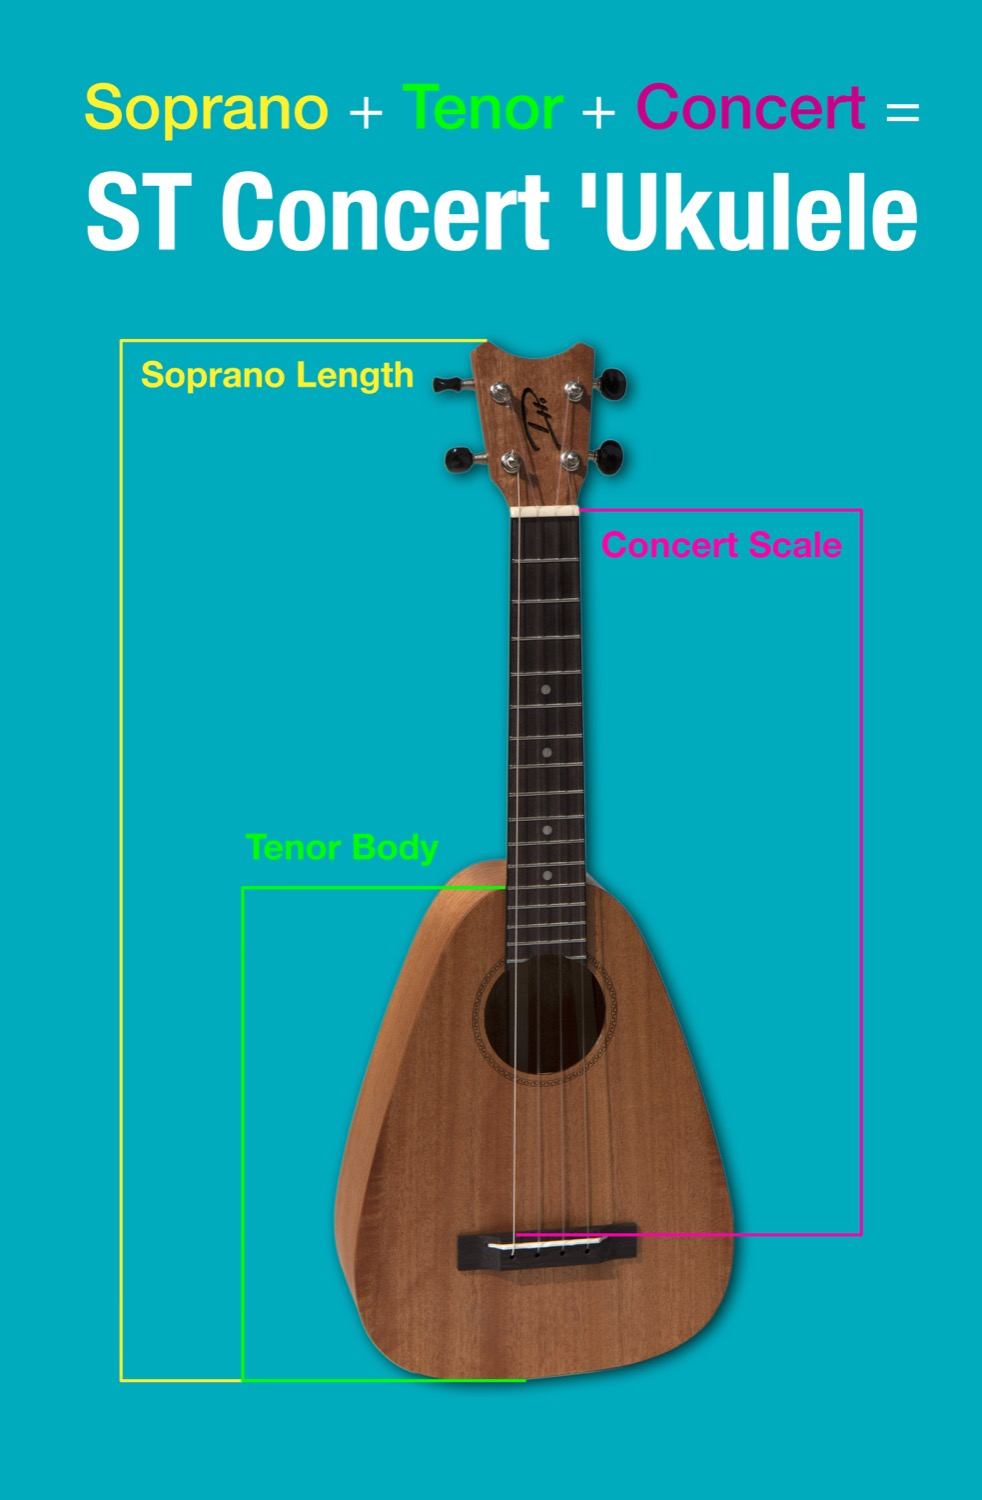 - The ST Concert takes the best features of the most popular sizes of 'ukuleles and brings them together, into one instrument.SThe overall length of a Soprano - max portability!TA Tenor sized body - max sound output!CONCERTThe scale length of a Concert - the most comfortable and convenient fretboard to play!————The ST Concert laminate (RC-STL) is the only all laminate instrument by Romero Creations. It's an innovative, world-class design combining maximum portability, playability, and sound, at an incredible value.